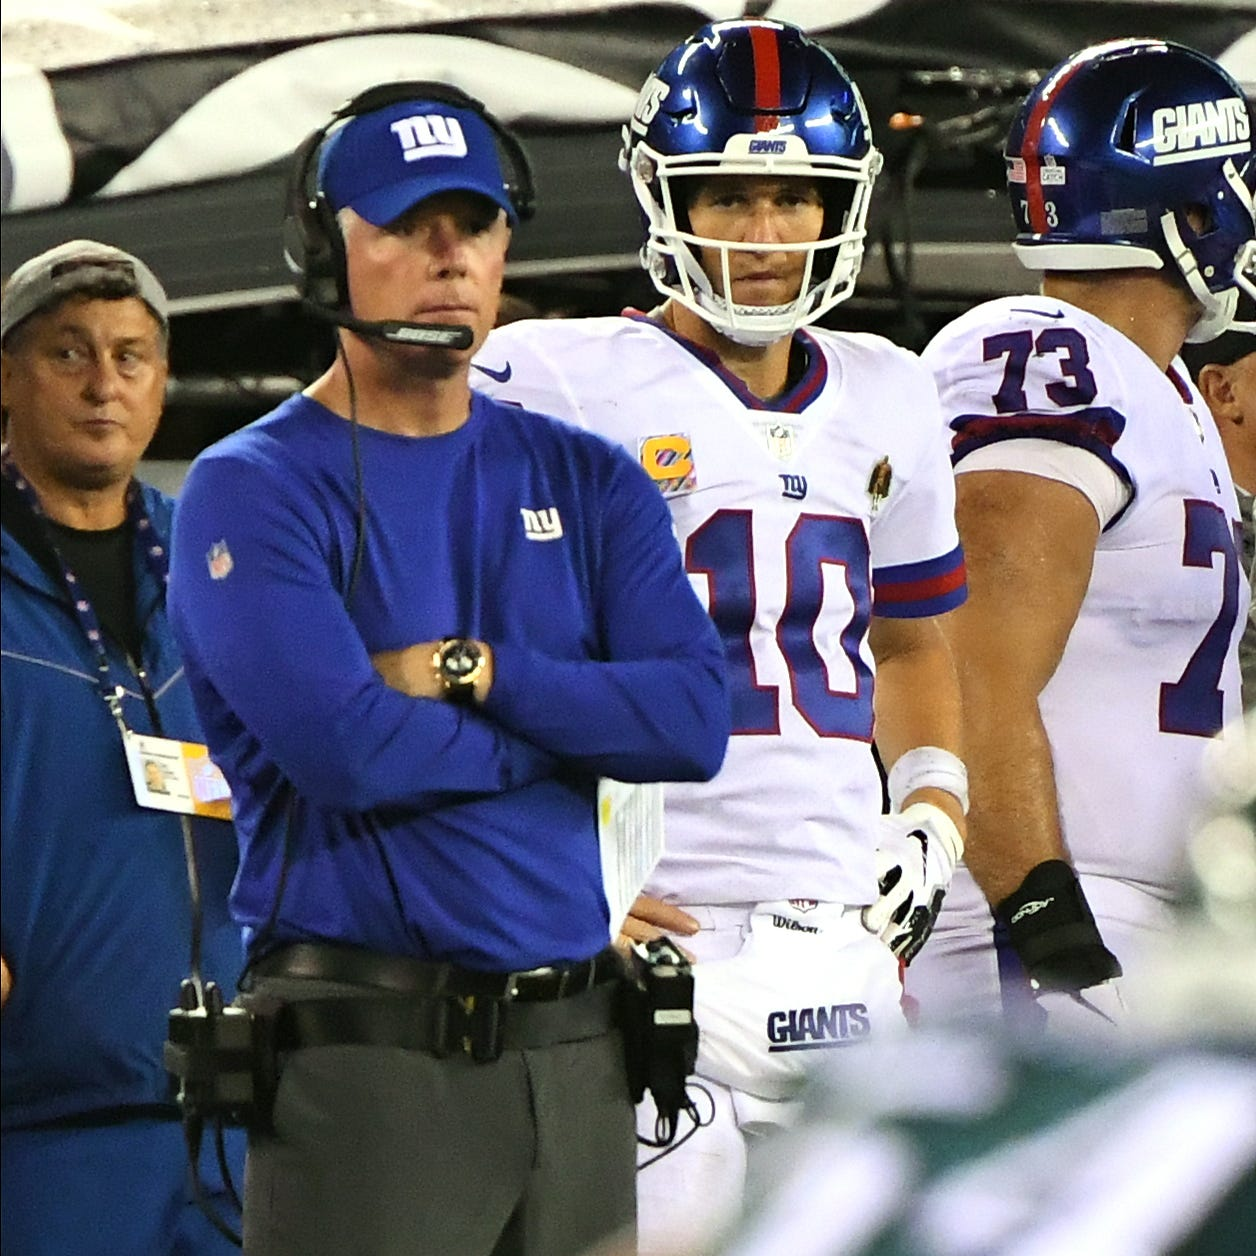 New York Giants: Way-too-early game predictions for the 2019 regular season